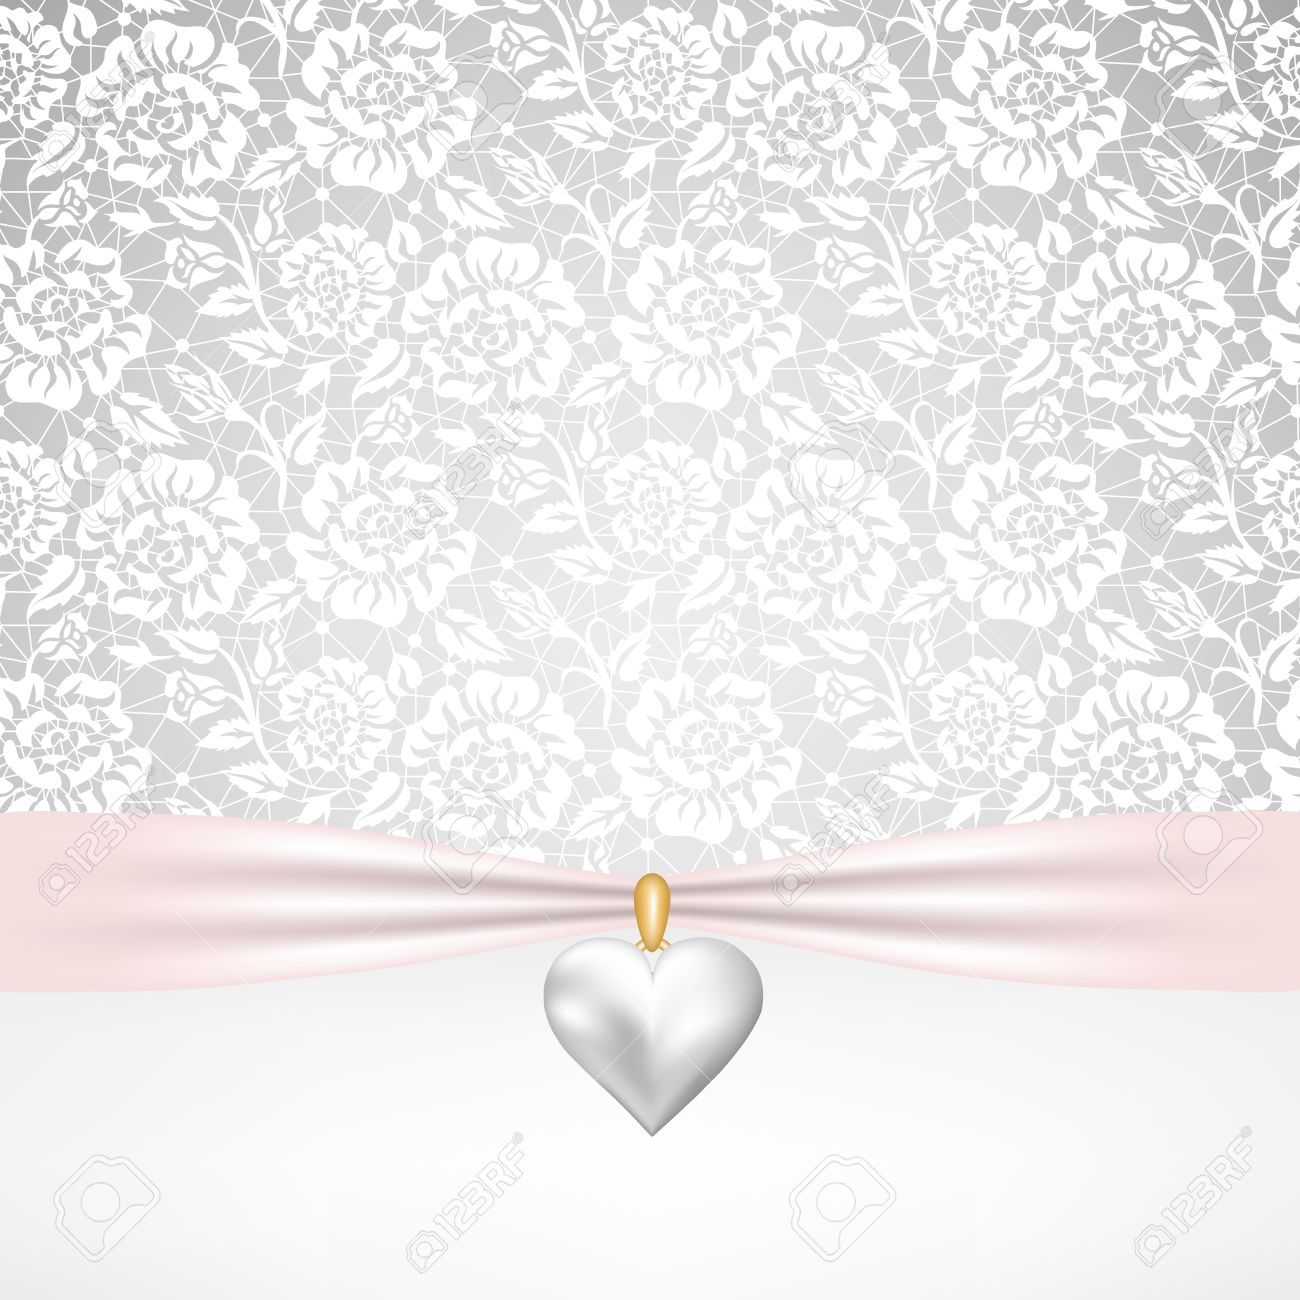 Template for wedding invitation or greeting card with lace fabric template for wedding invitation or greeting card with lace fabric background and pearl heart pendant kristyandbryce Choice Image